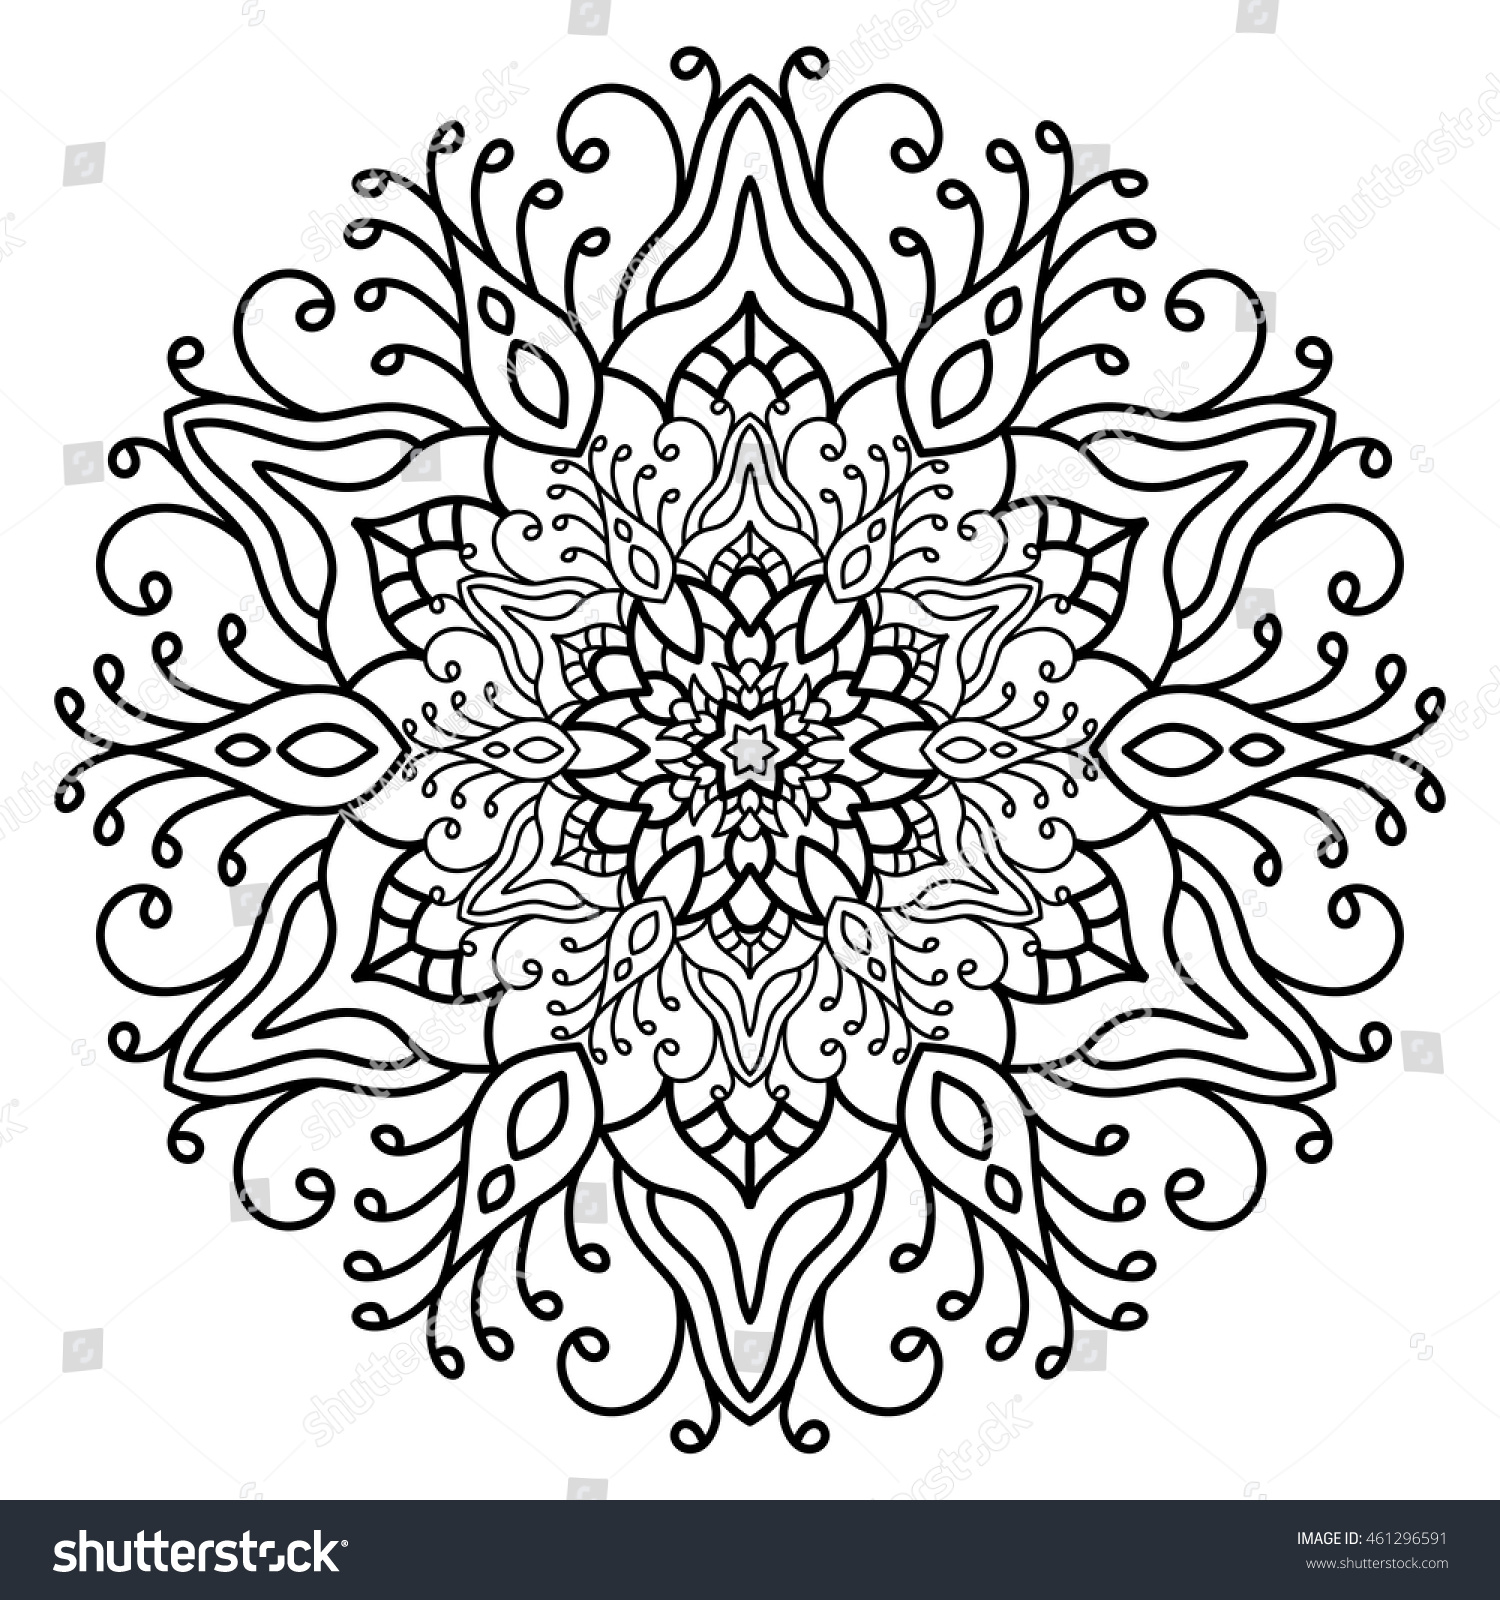 vector illustration outline mandala abstract element stock